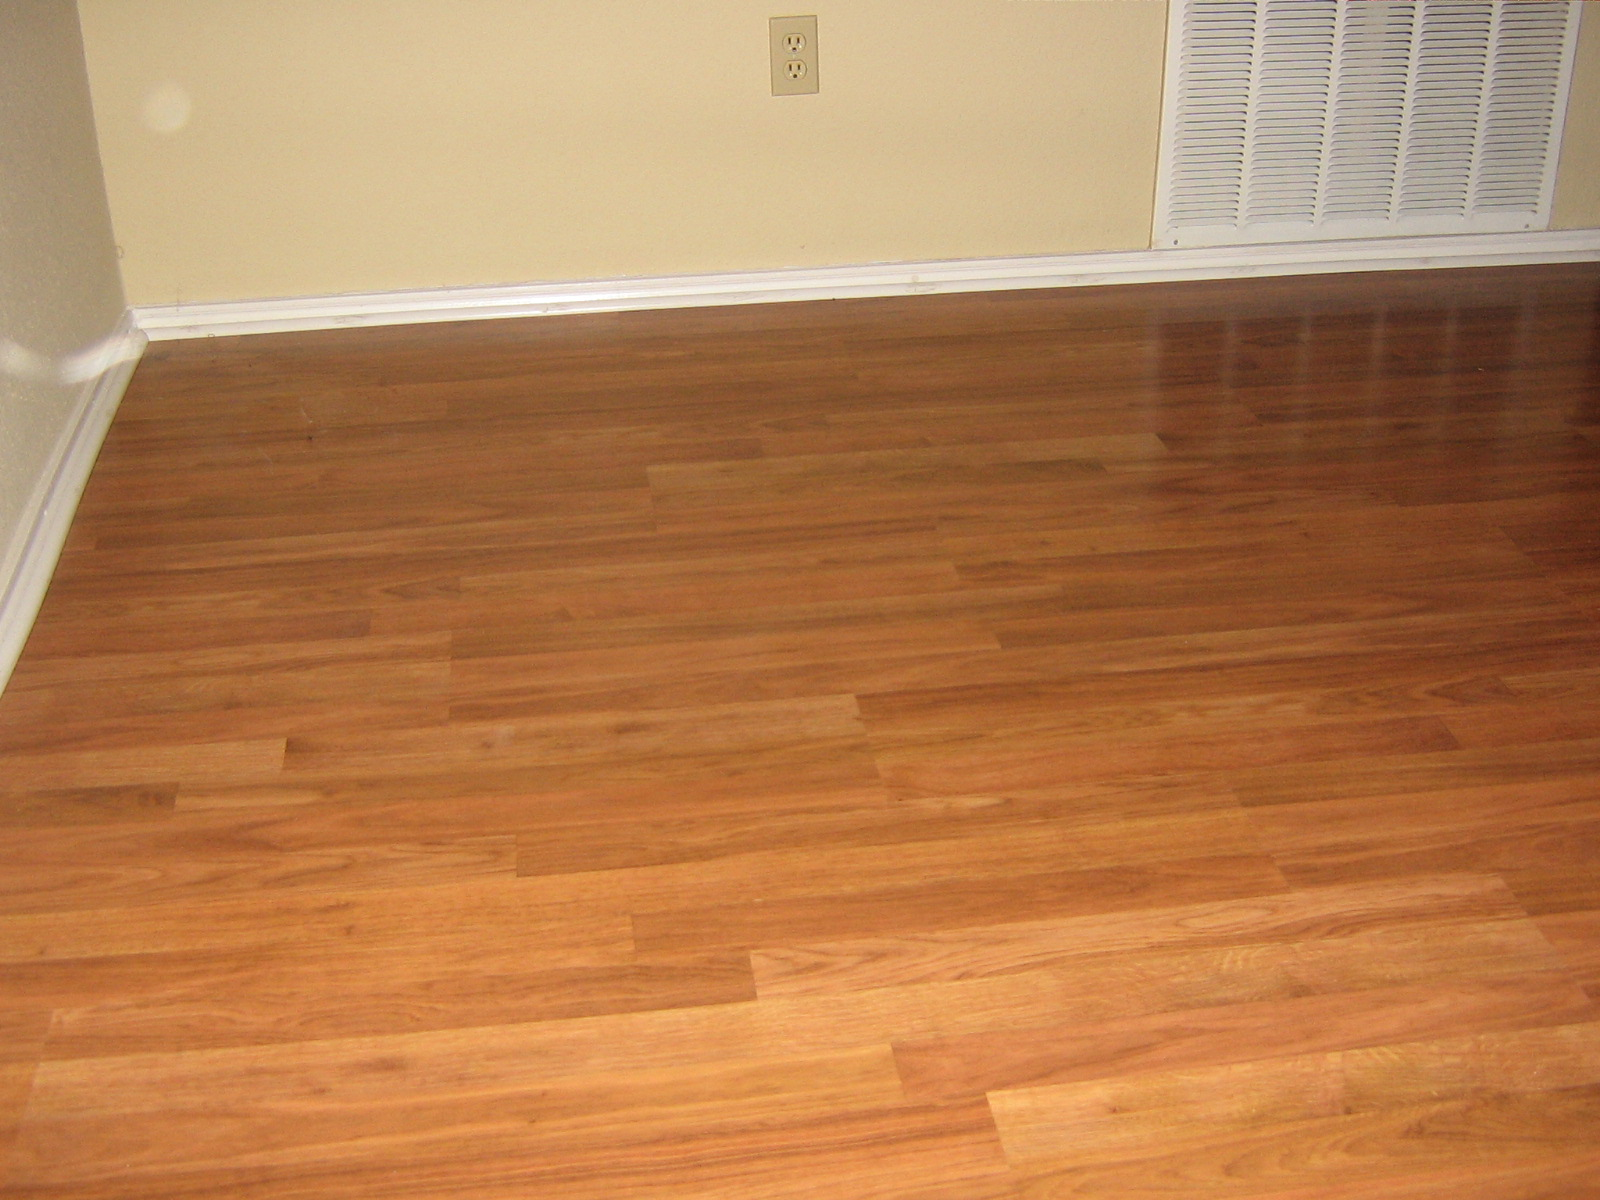 Laminate flooring wood and laminate flooring for At floor or on floor